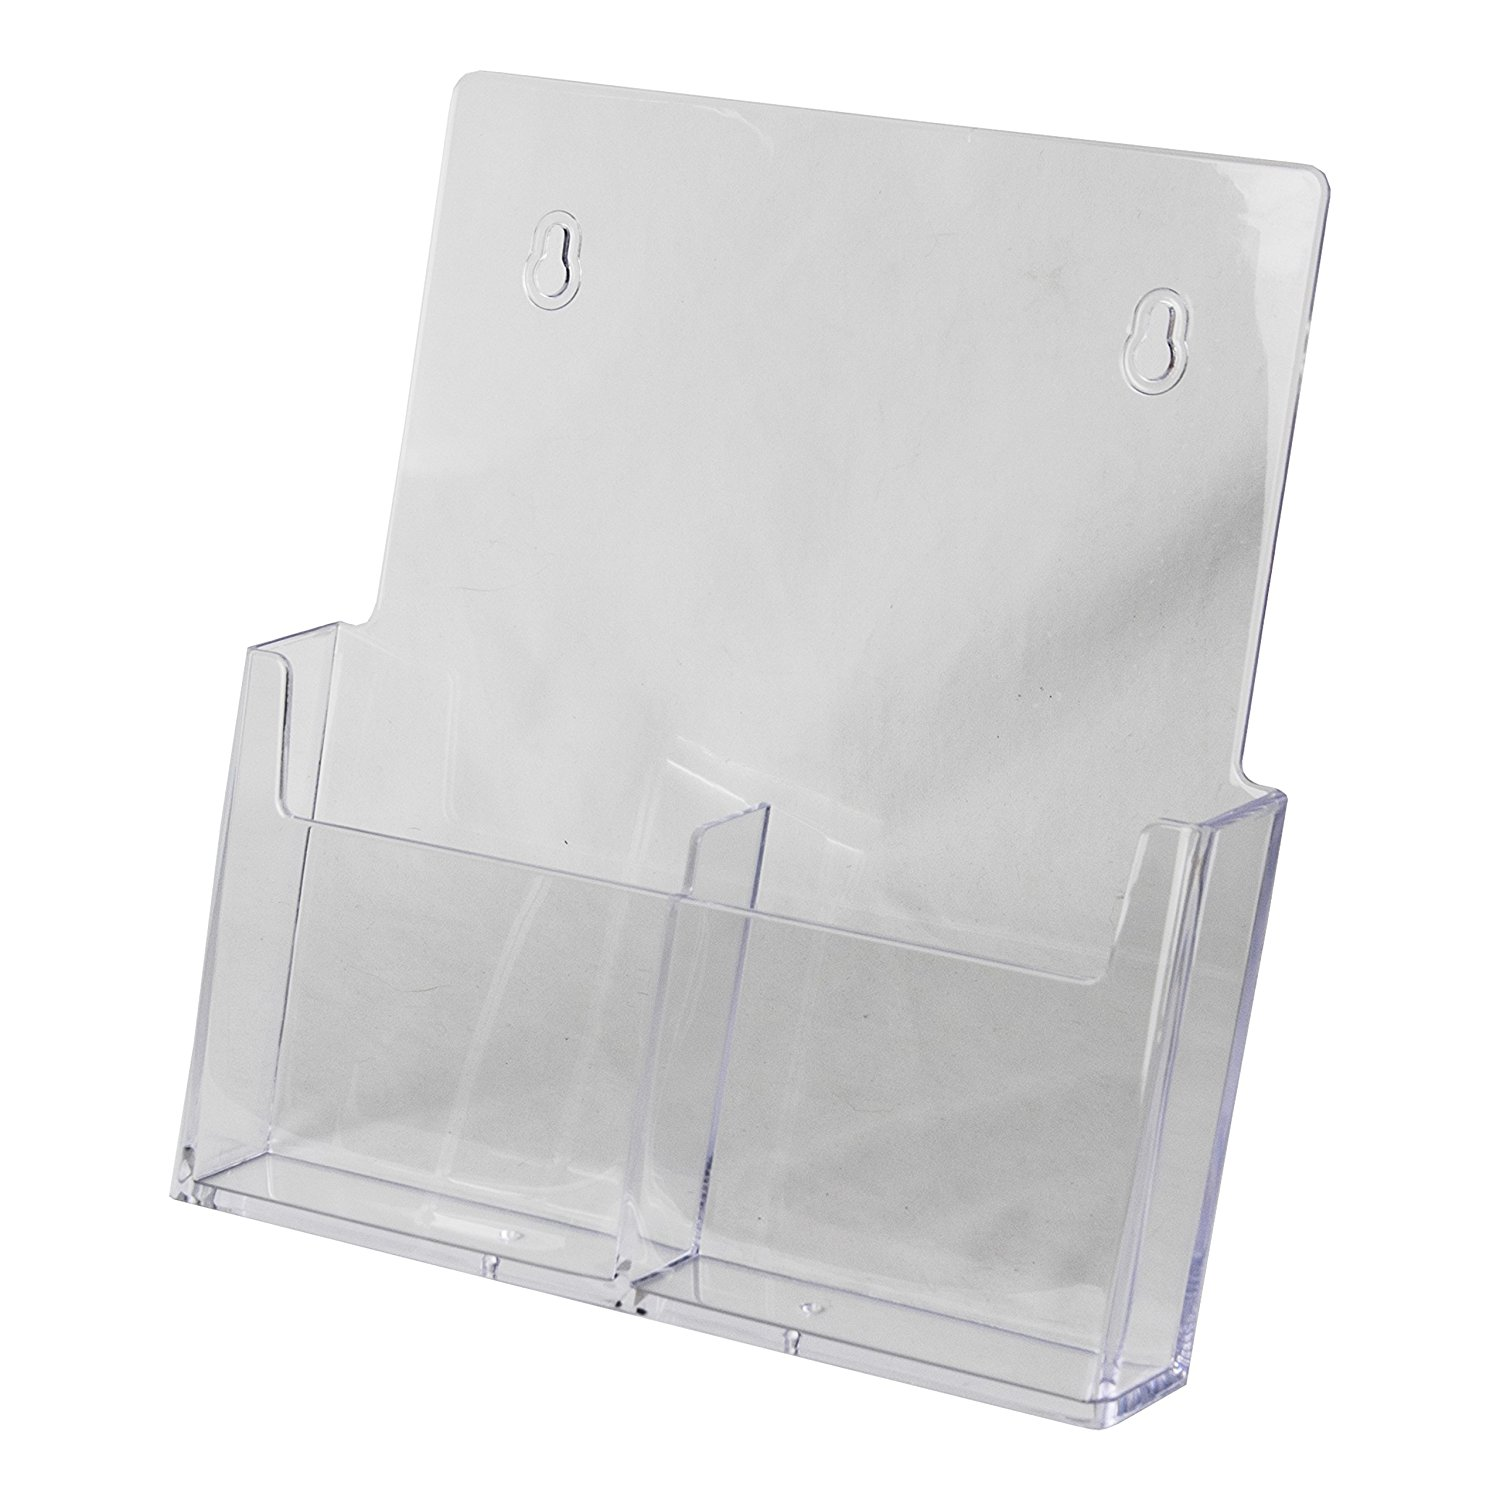 Clear-Ad - LHW-M131 - Acrylic Wall Mount Trifold 2-Tier Brochure Holder 4x9 - Two Pockets Pamphlet Display (Pack of 4)